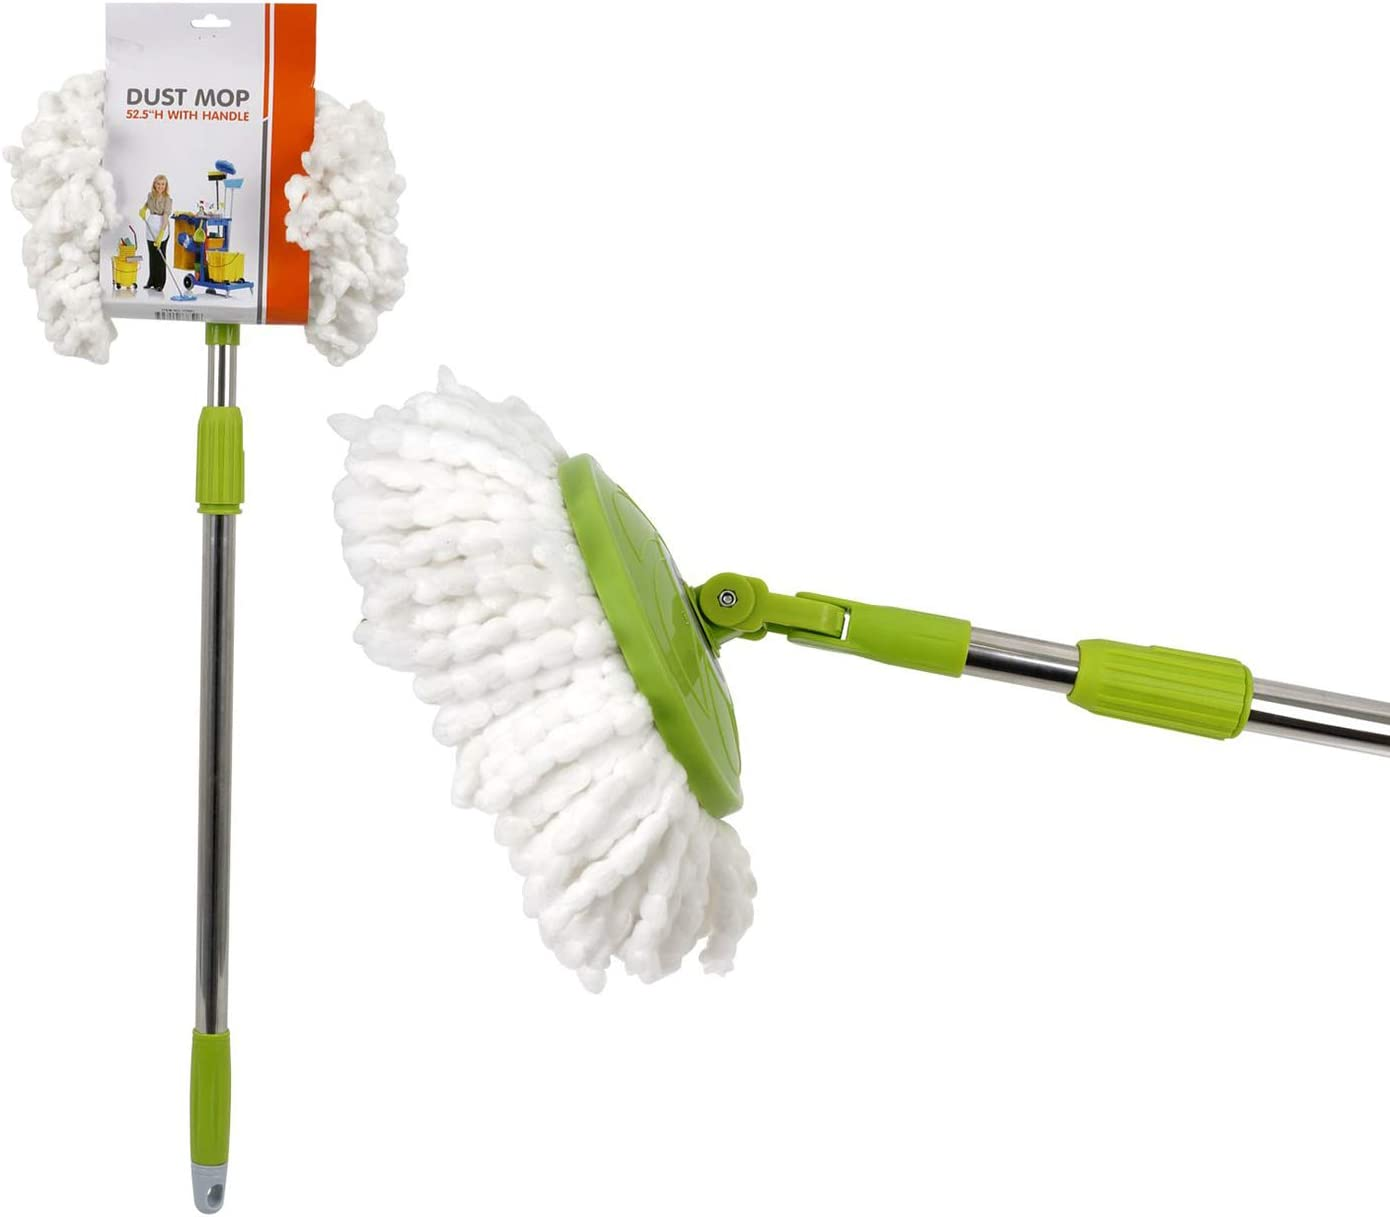 Dust Mop for Cleaning, Microfiber Head | 52.5-inch Mop for Dusting, with Extendable Long Telescopic Handle